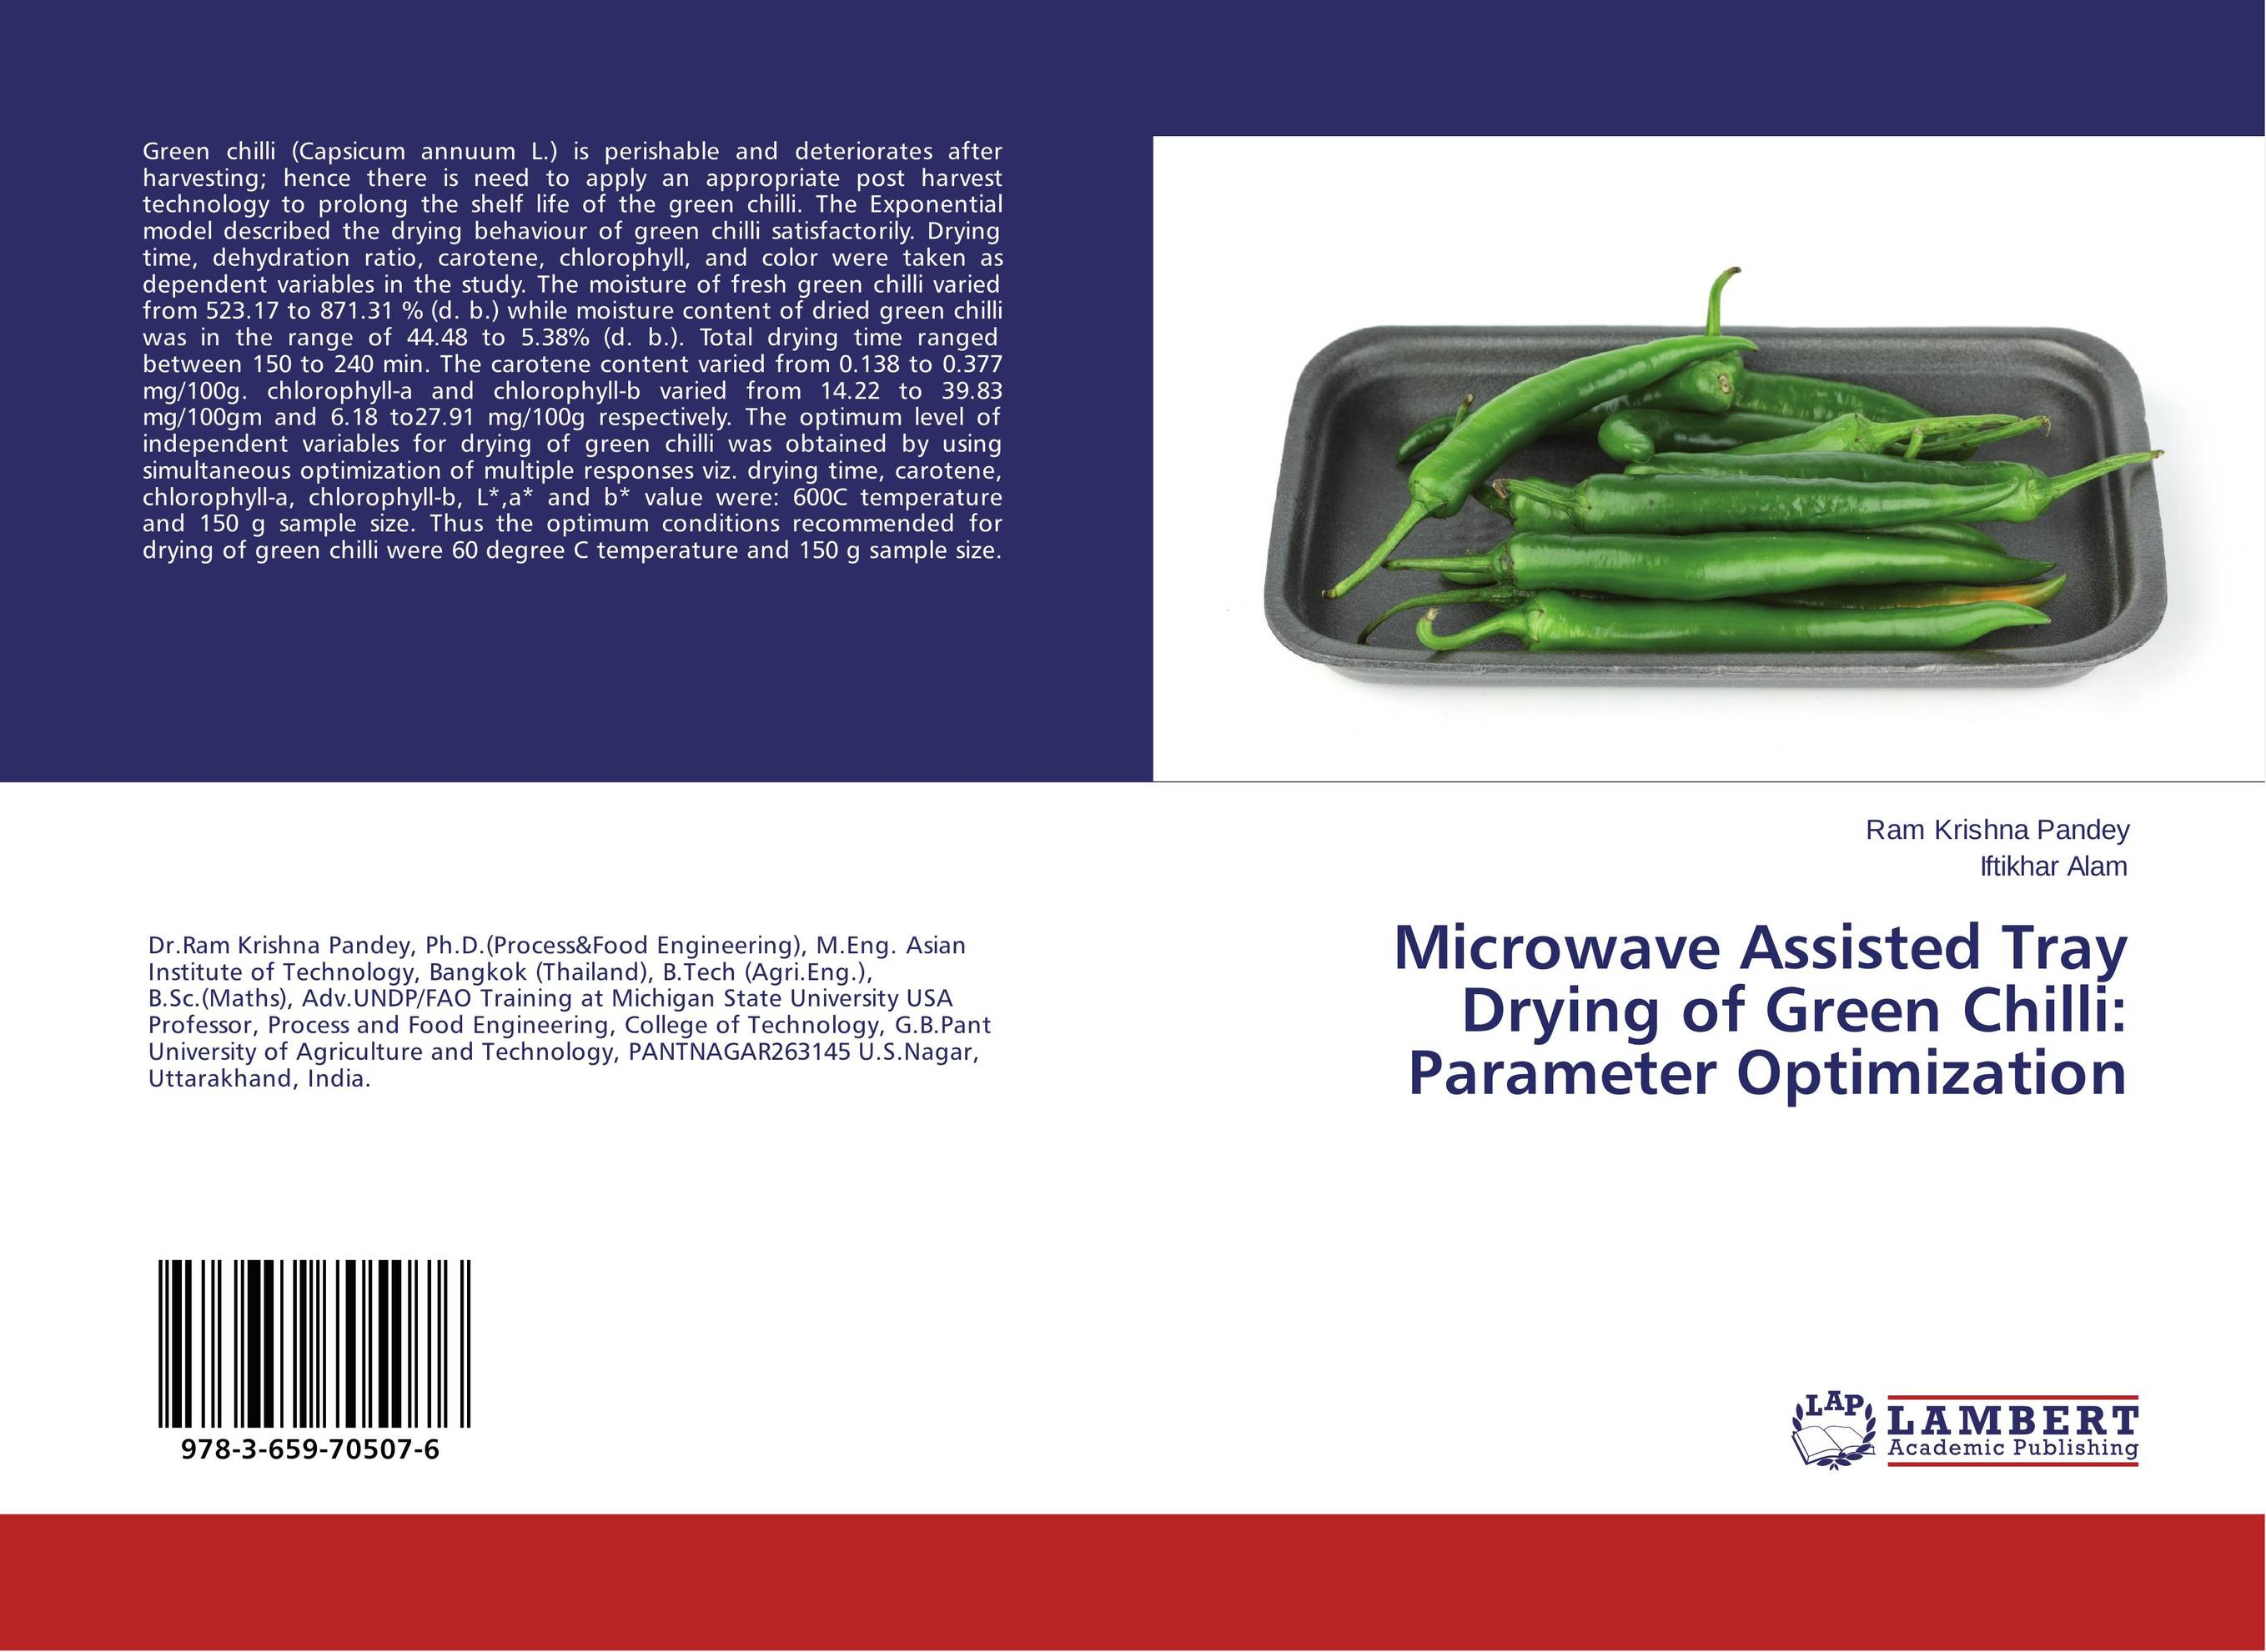 Microwave Assisted Tray Drying of Green Chilli: Parameter Optimization diallel analysis in chilli capsicum annuum l